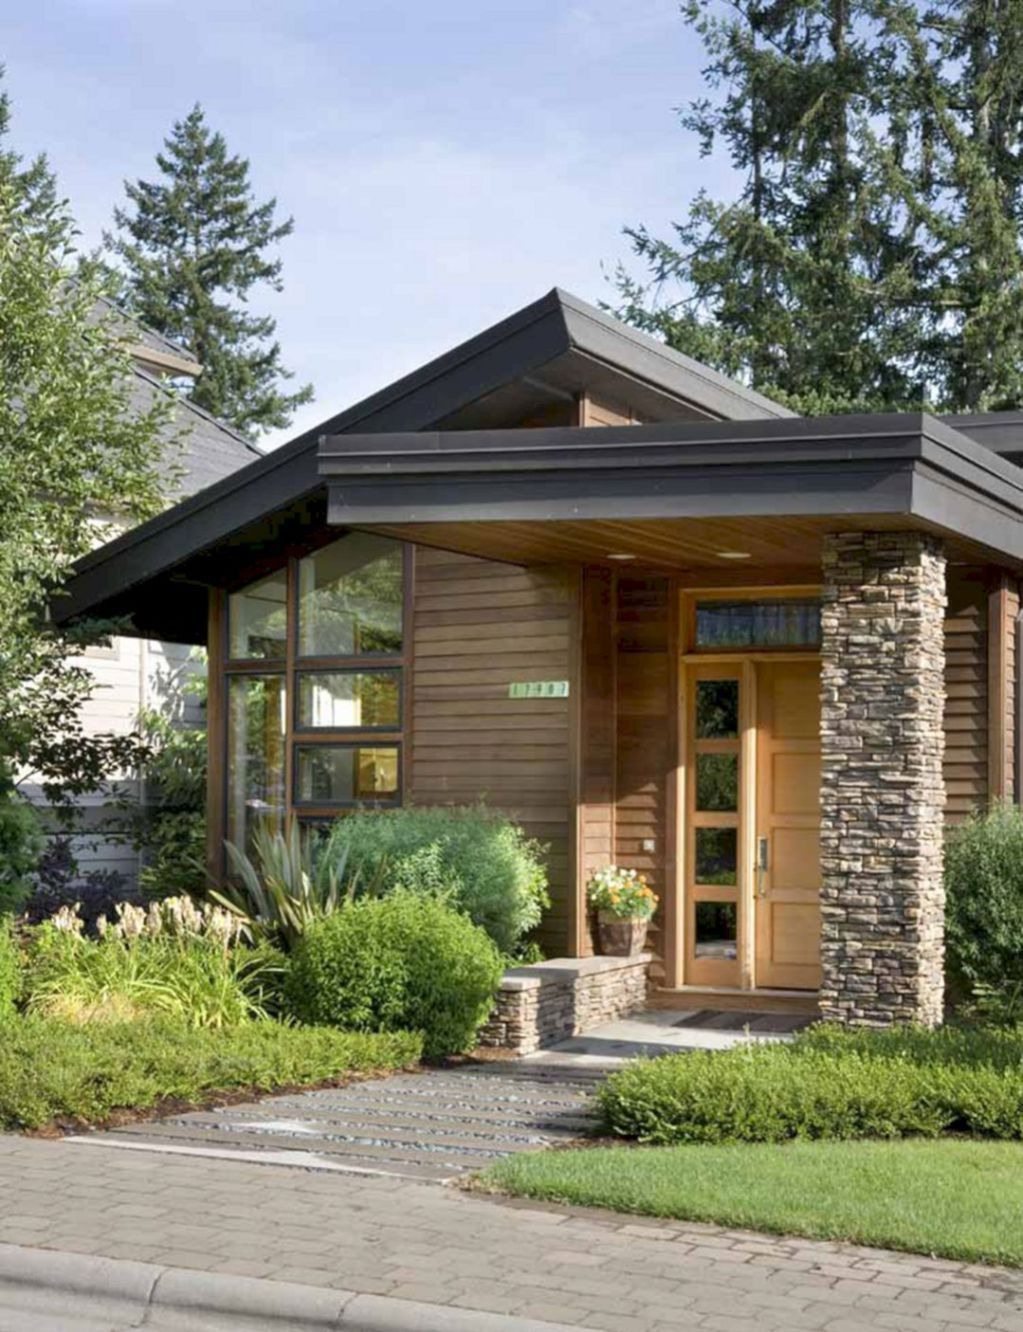 Small House Designs Images Inspirational top 10 Modern Tiny House Design and Small Homes Collections